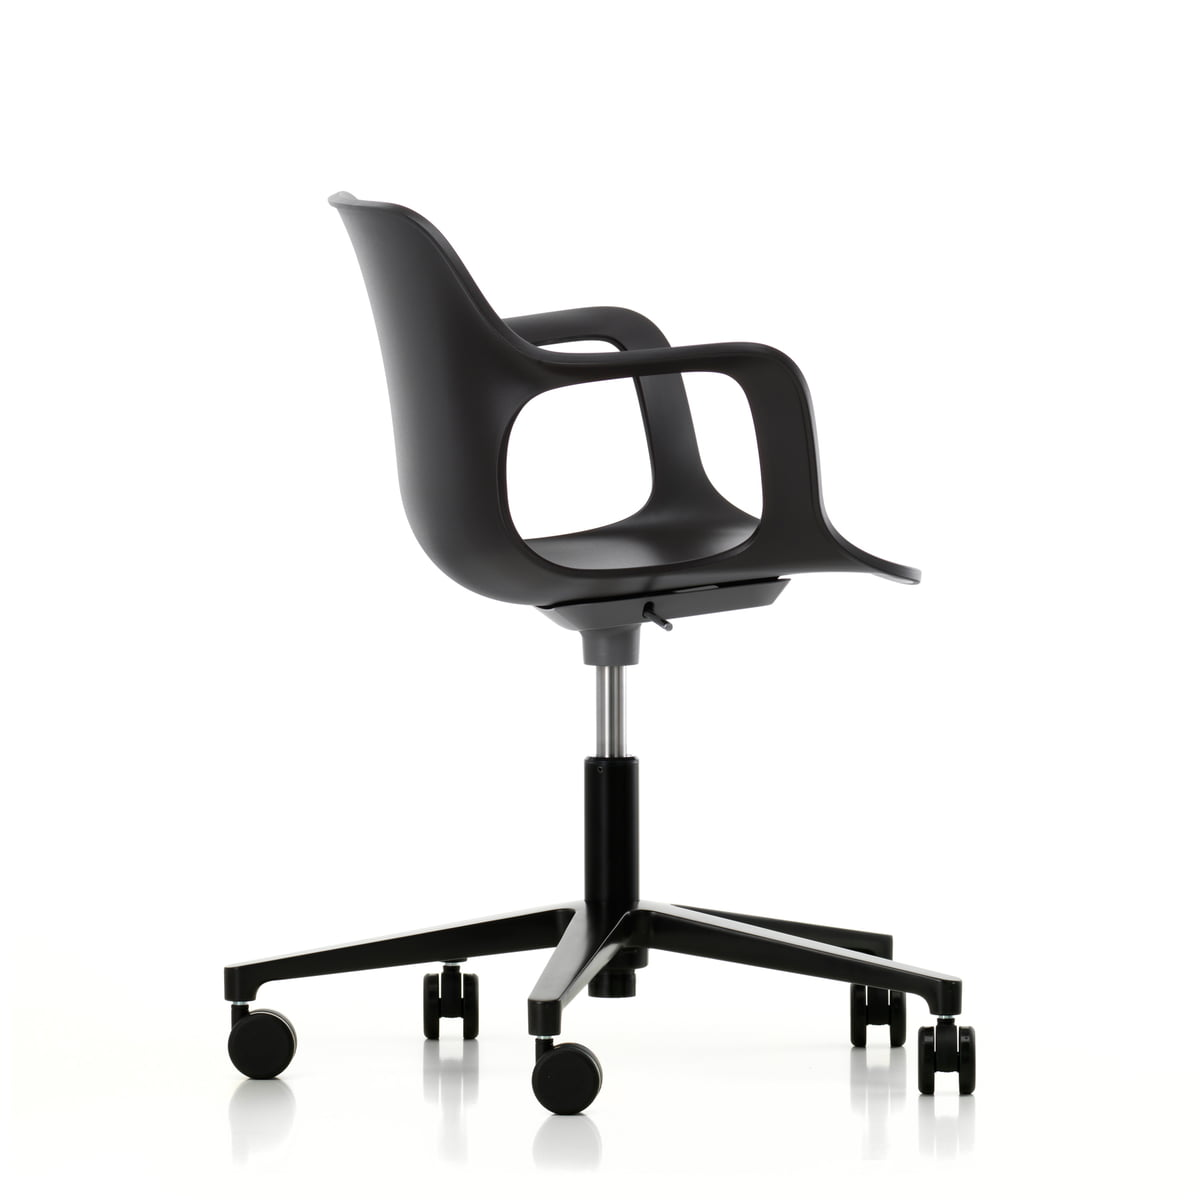 swivel chair uk gumtree covers tallaght hal studio office by vitra